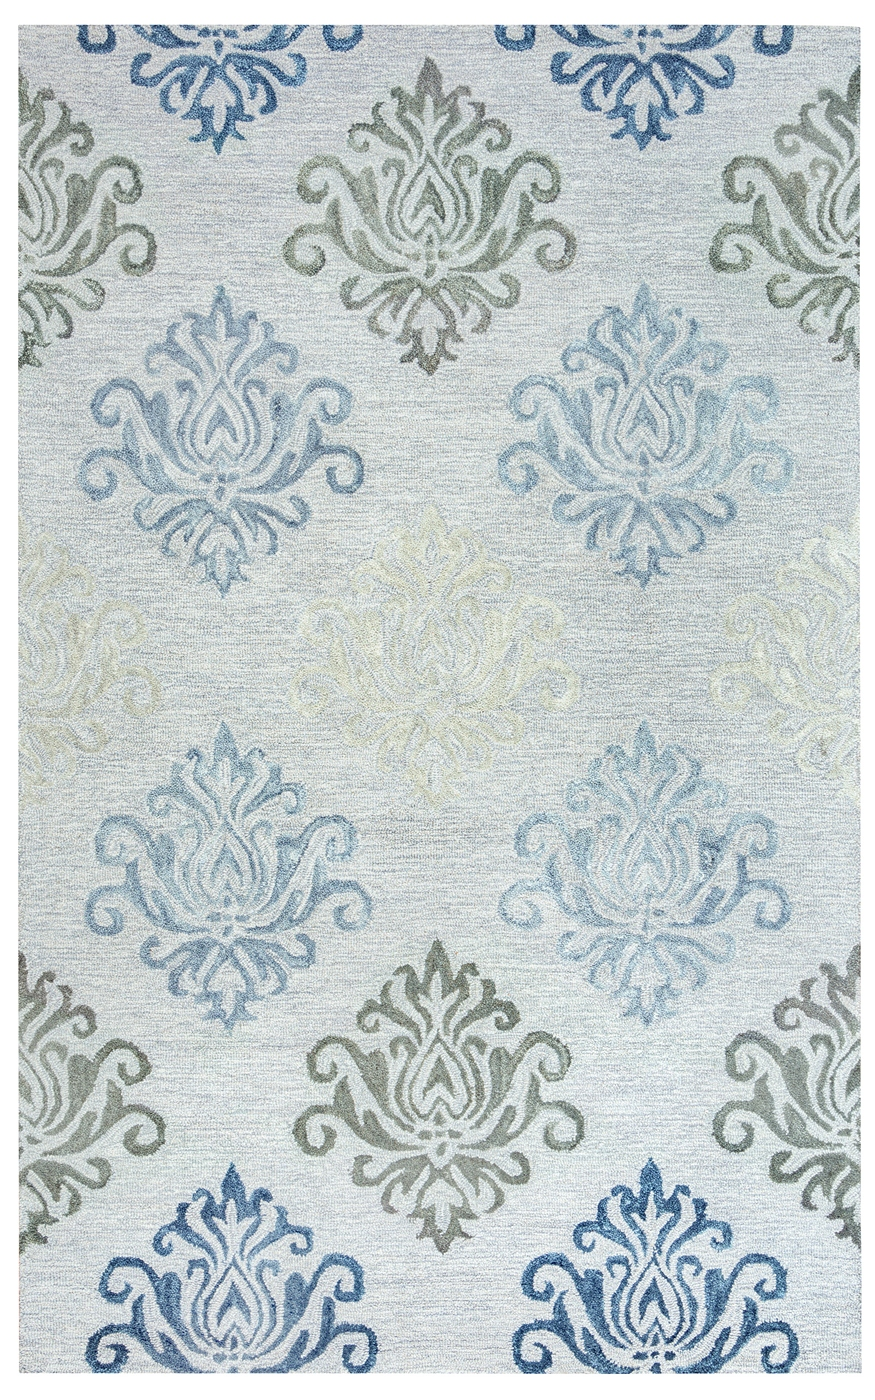 Lancaster Rug Company Dalyn Phone Number Rugs